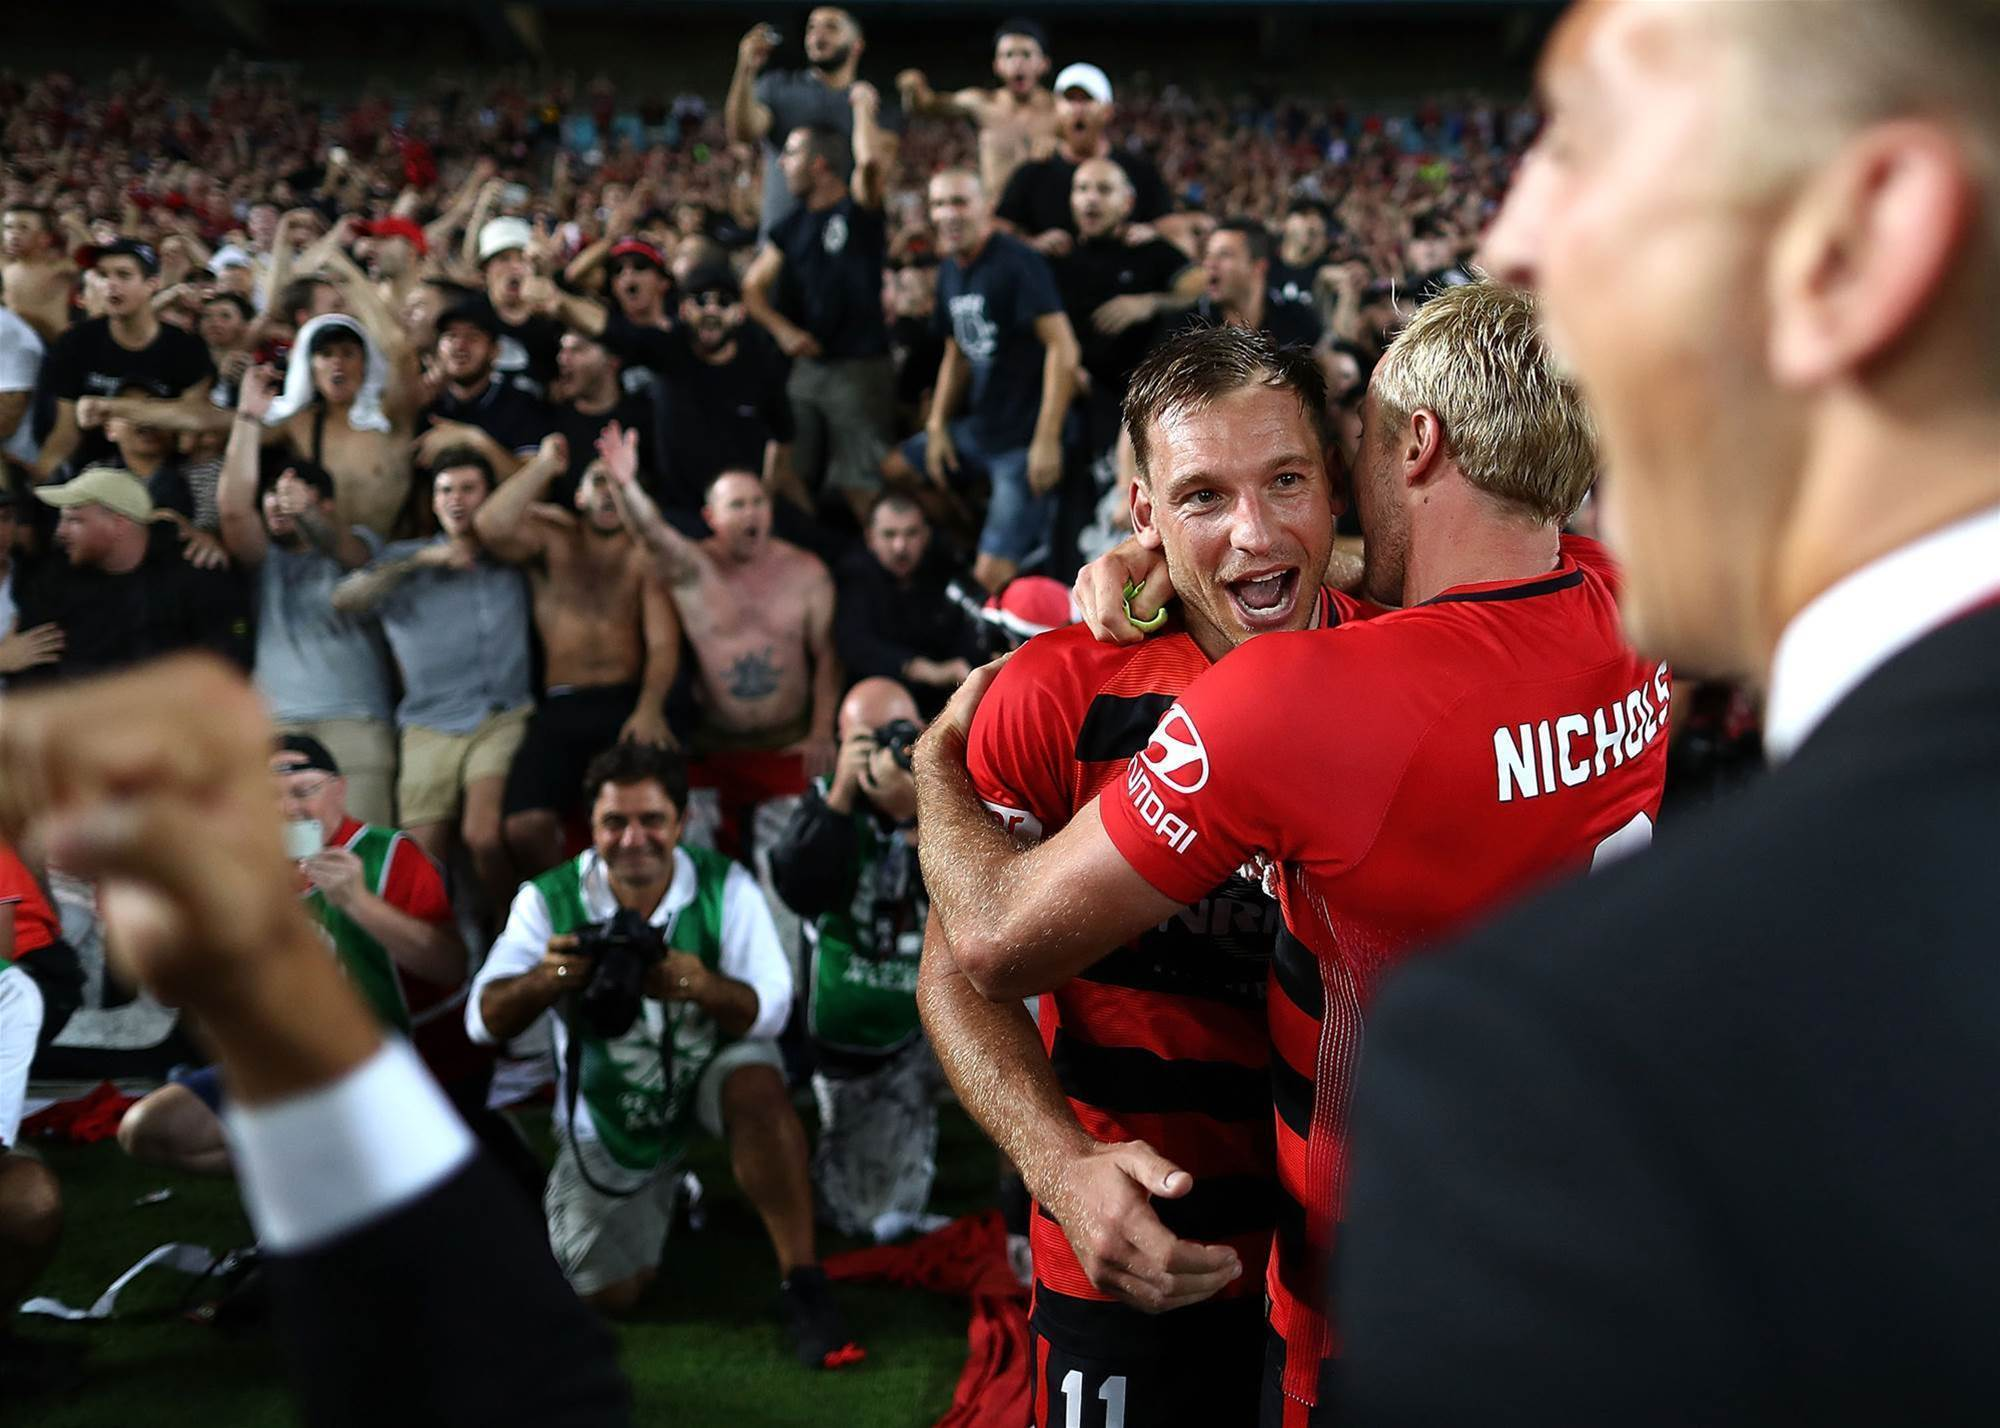 Sydney Derby pic special